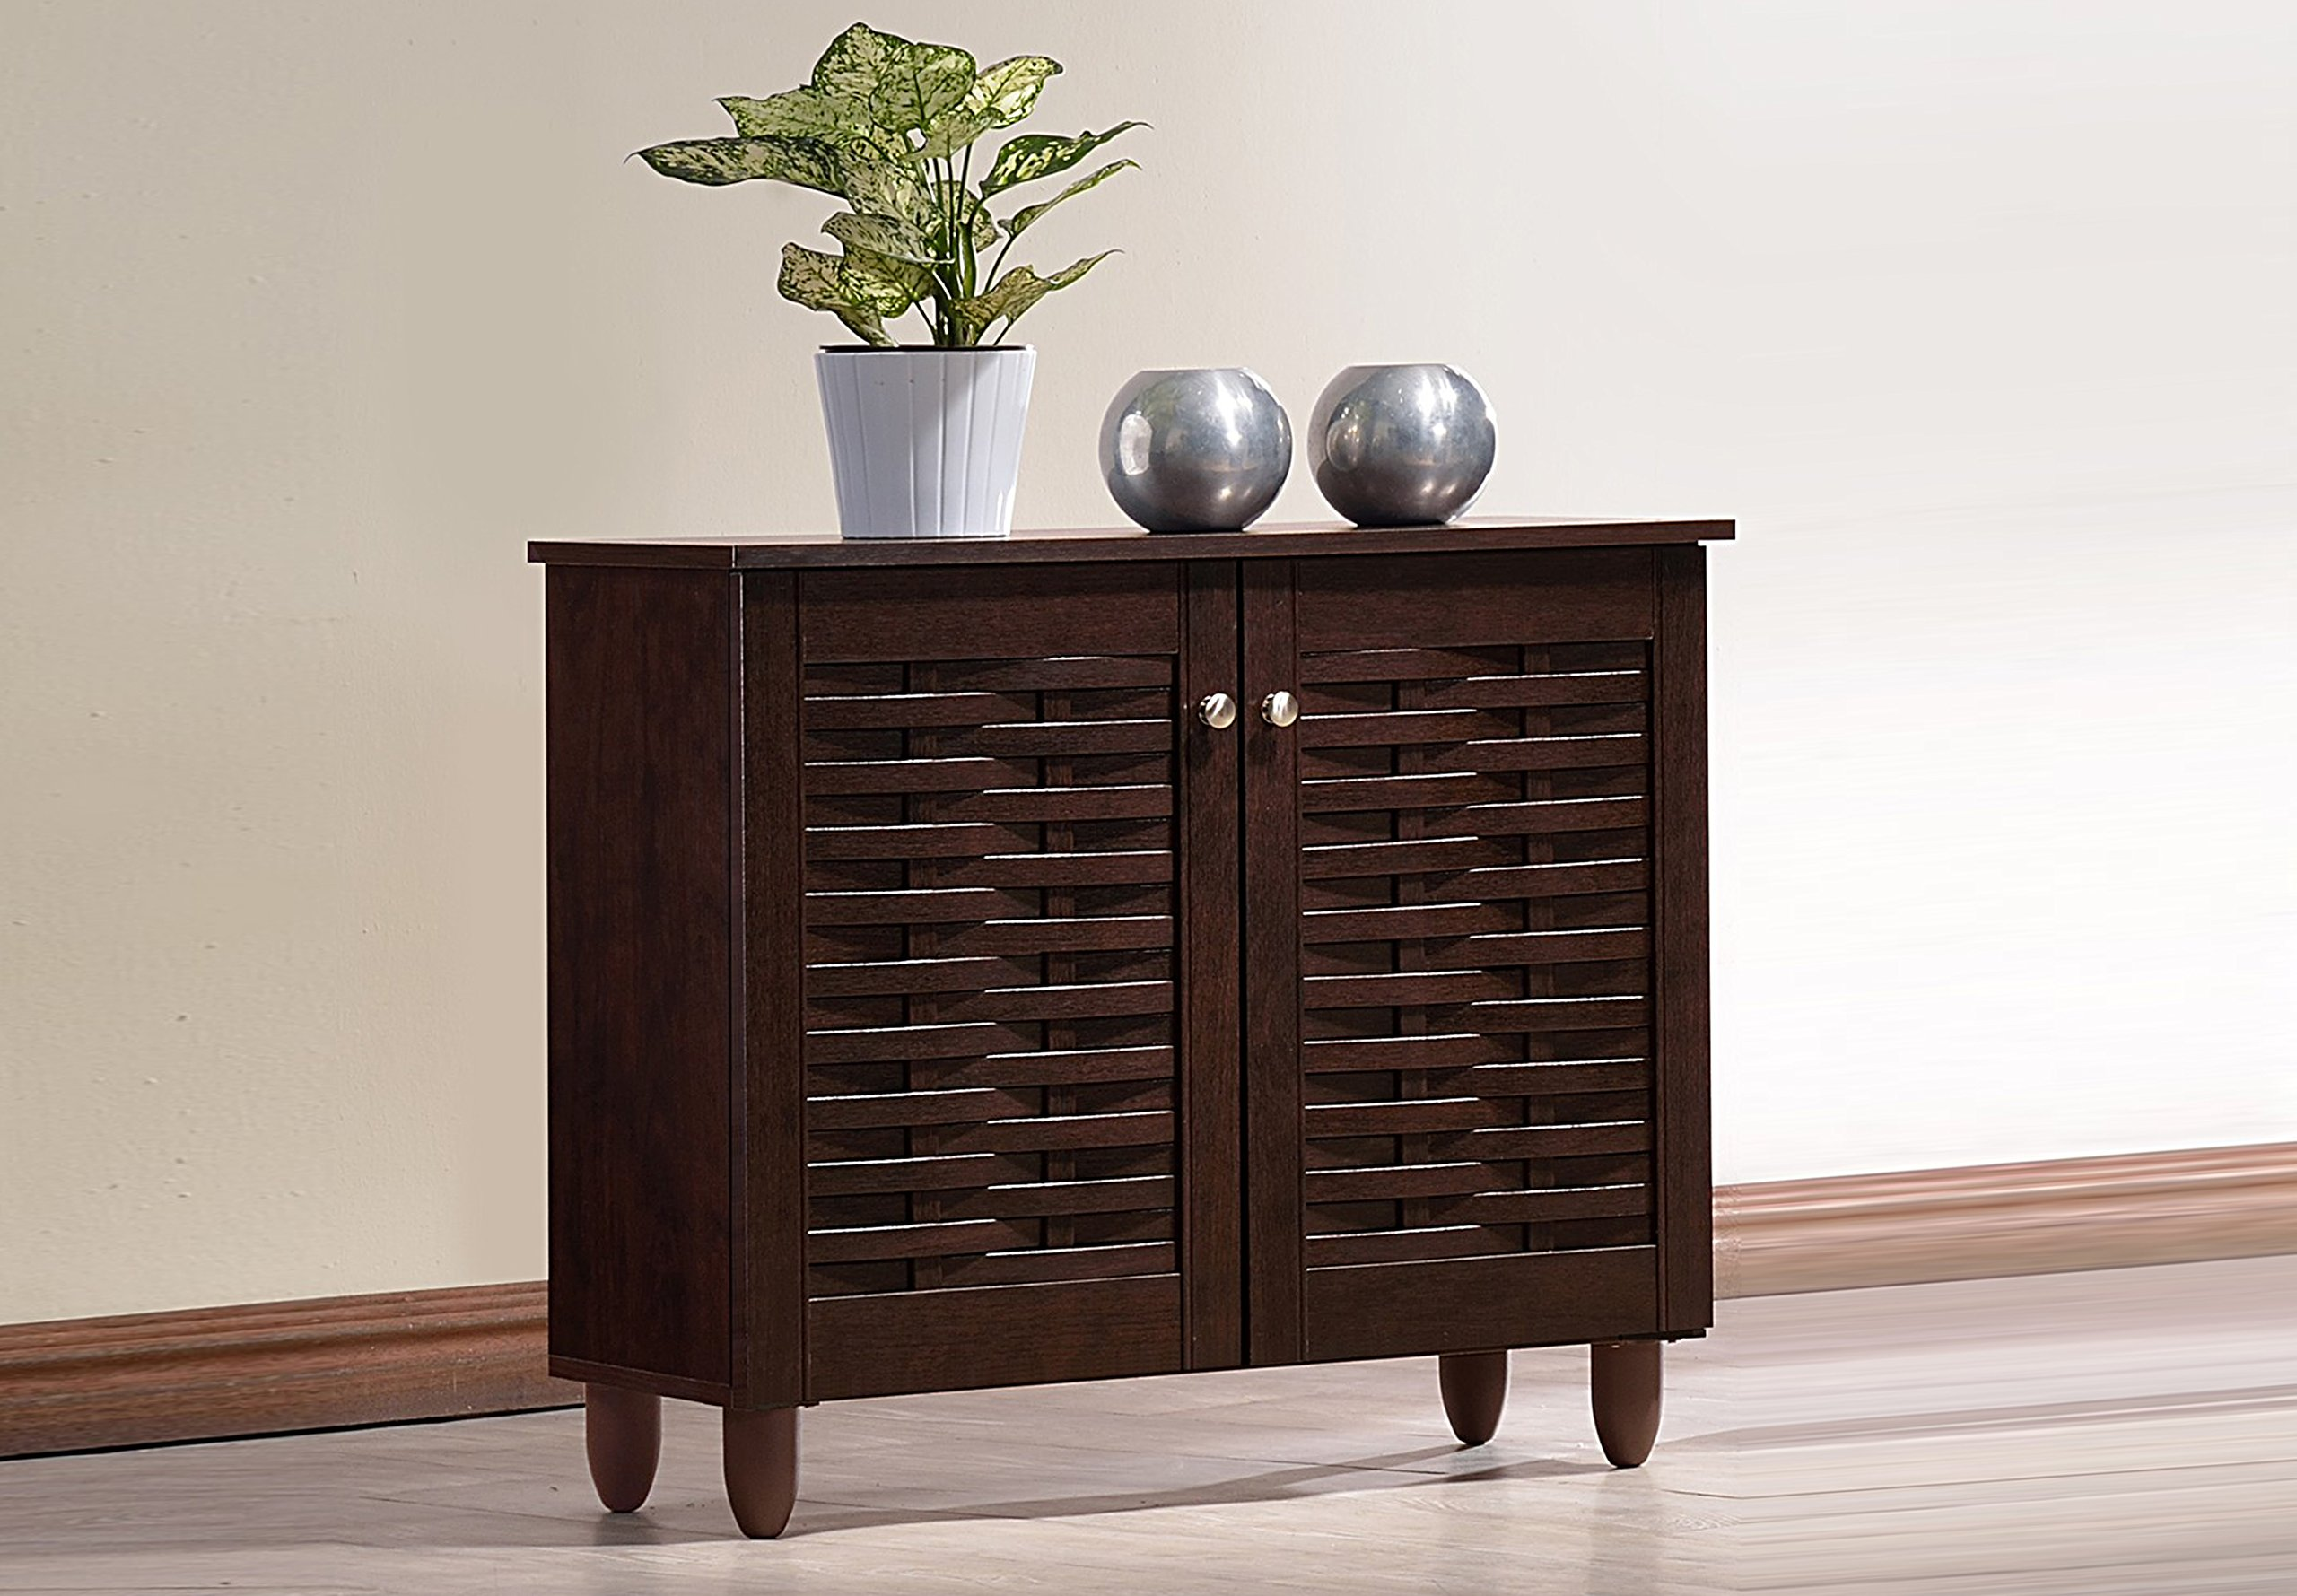 Baxton Studio Wholesale Interiors Winda Modern and Contemporary 2-Door Dark Brown Wooden Entryway Shoes Storage Cabinet by Baxton Studio